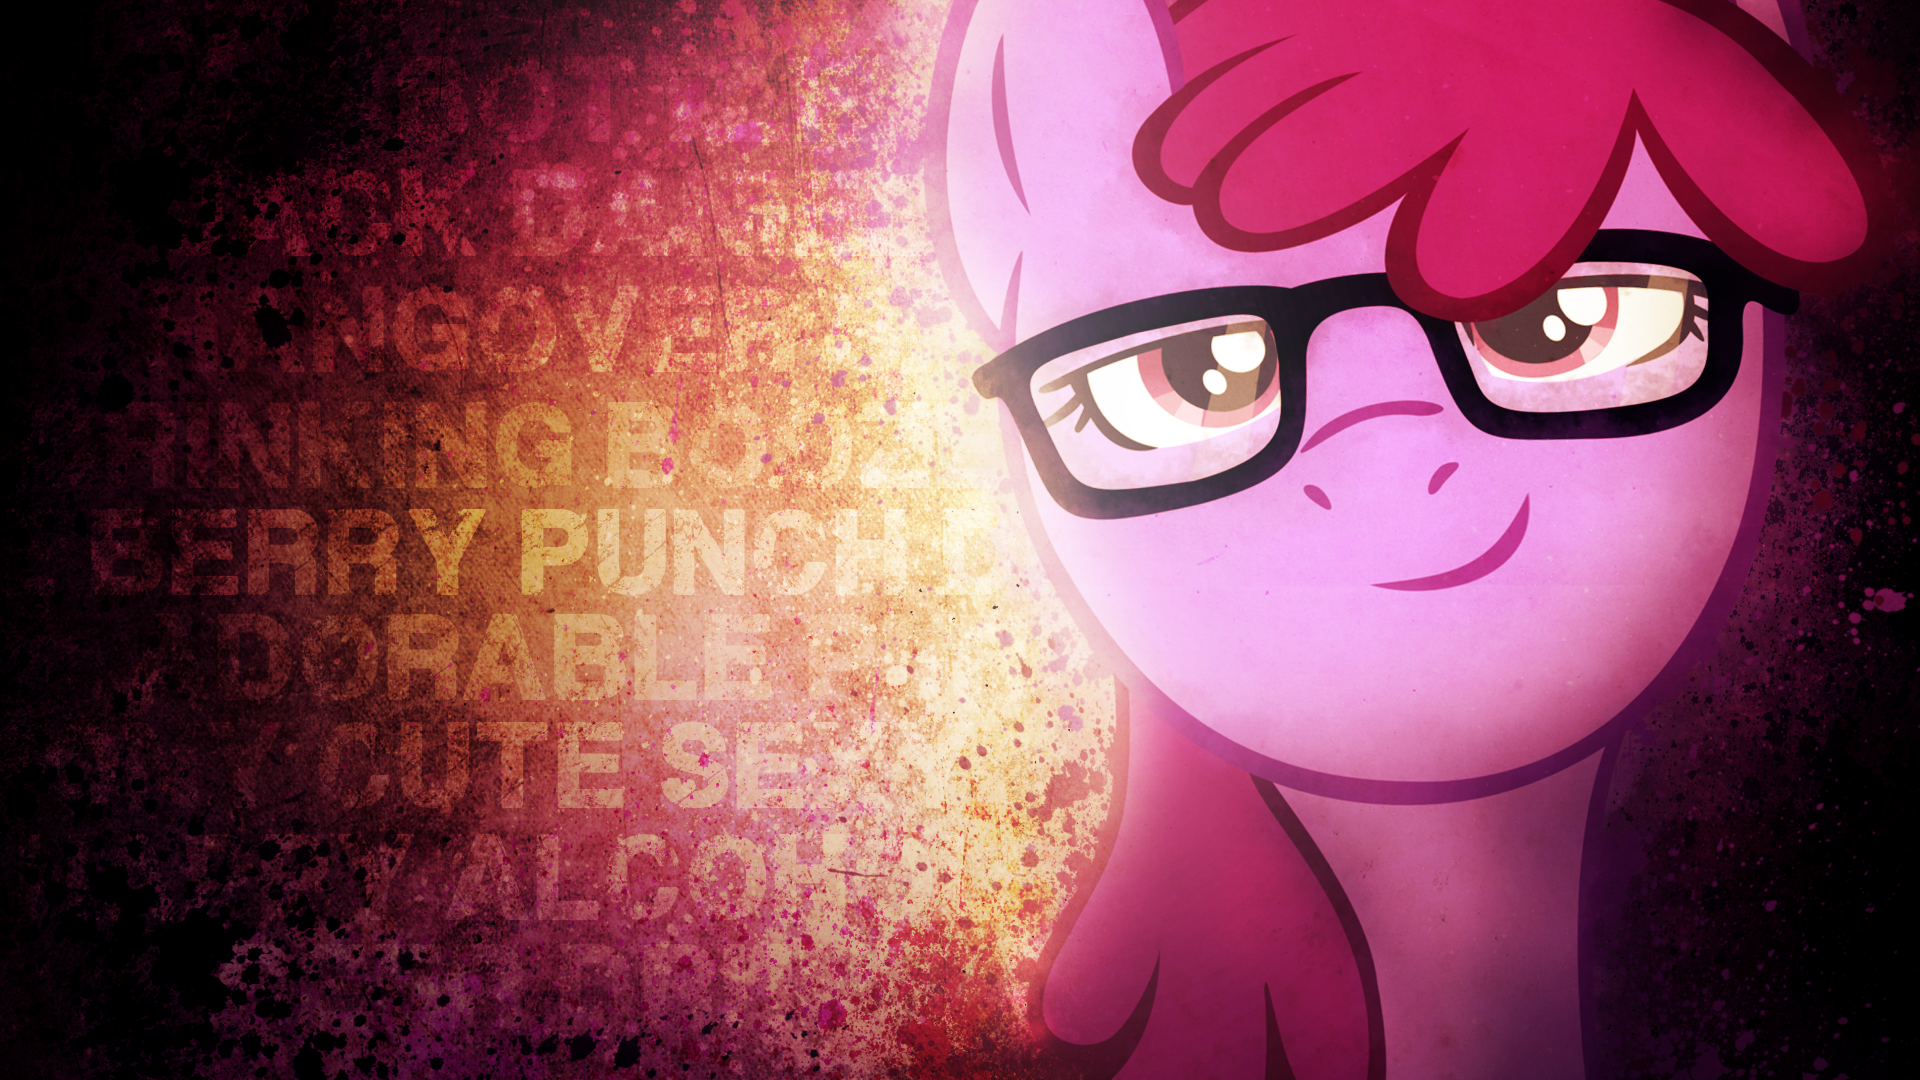 Hipster Berry Punch